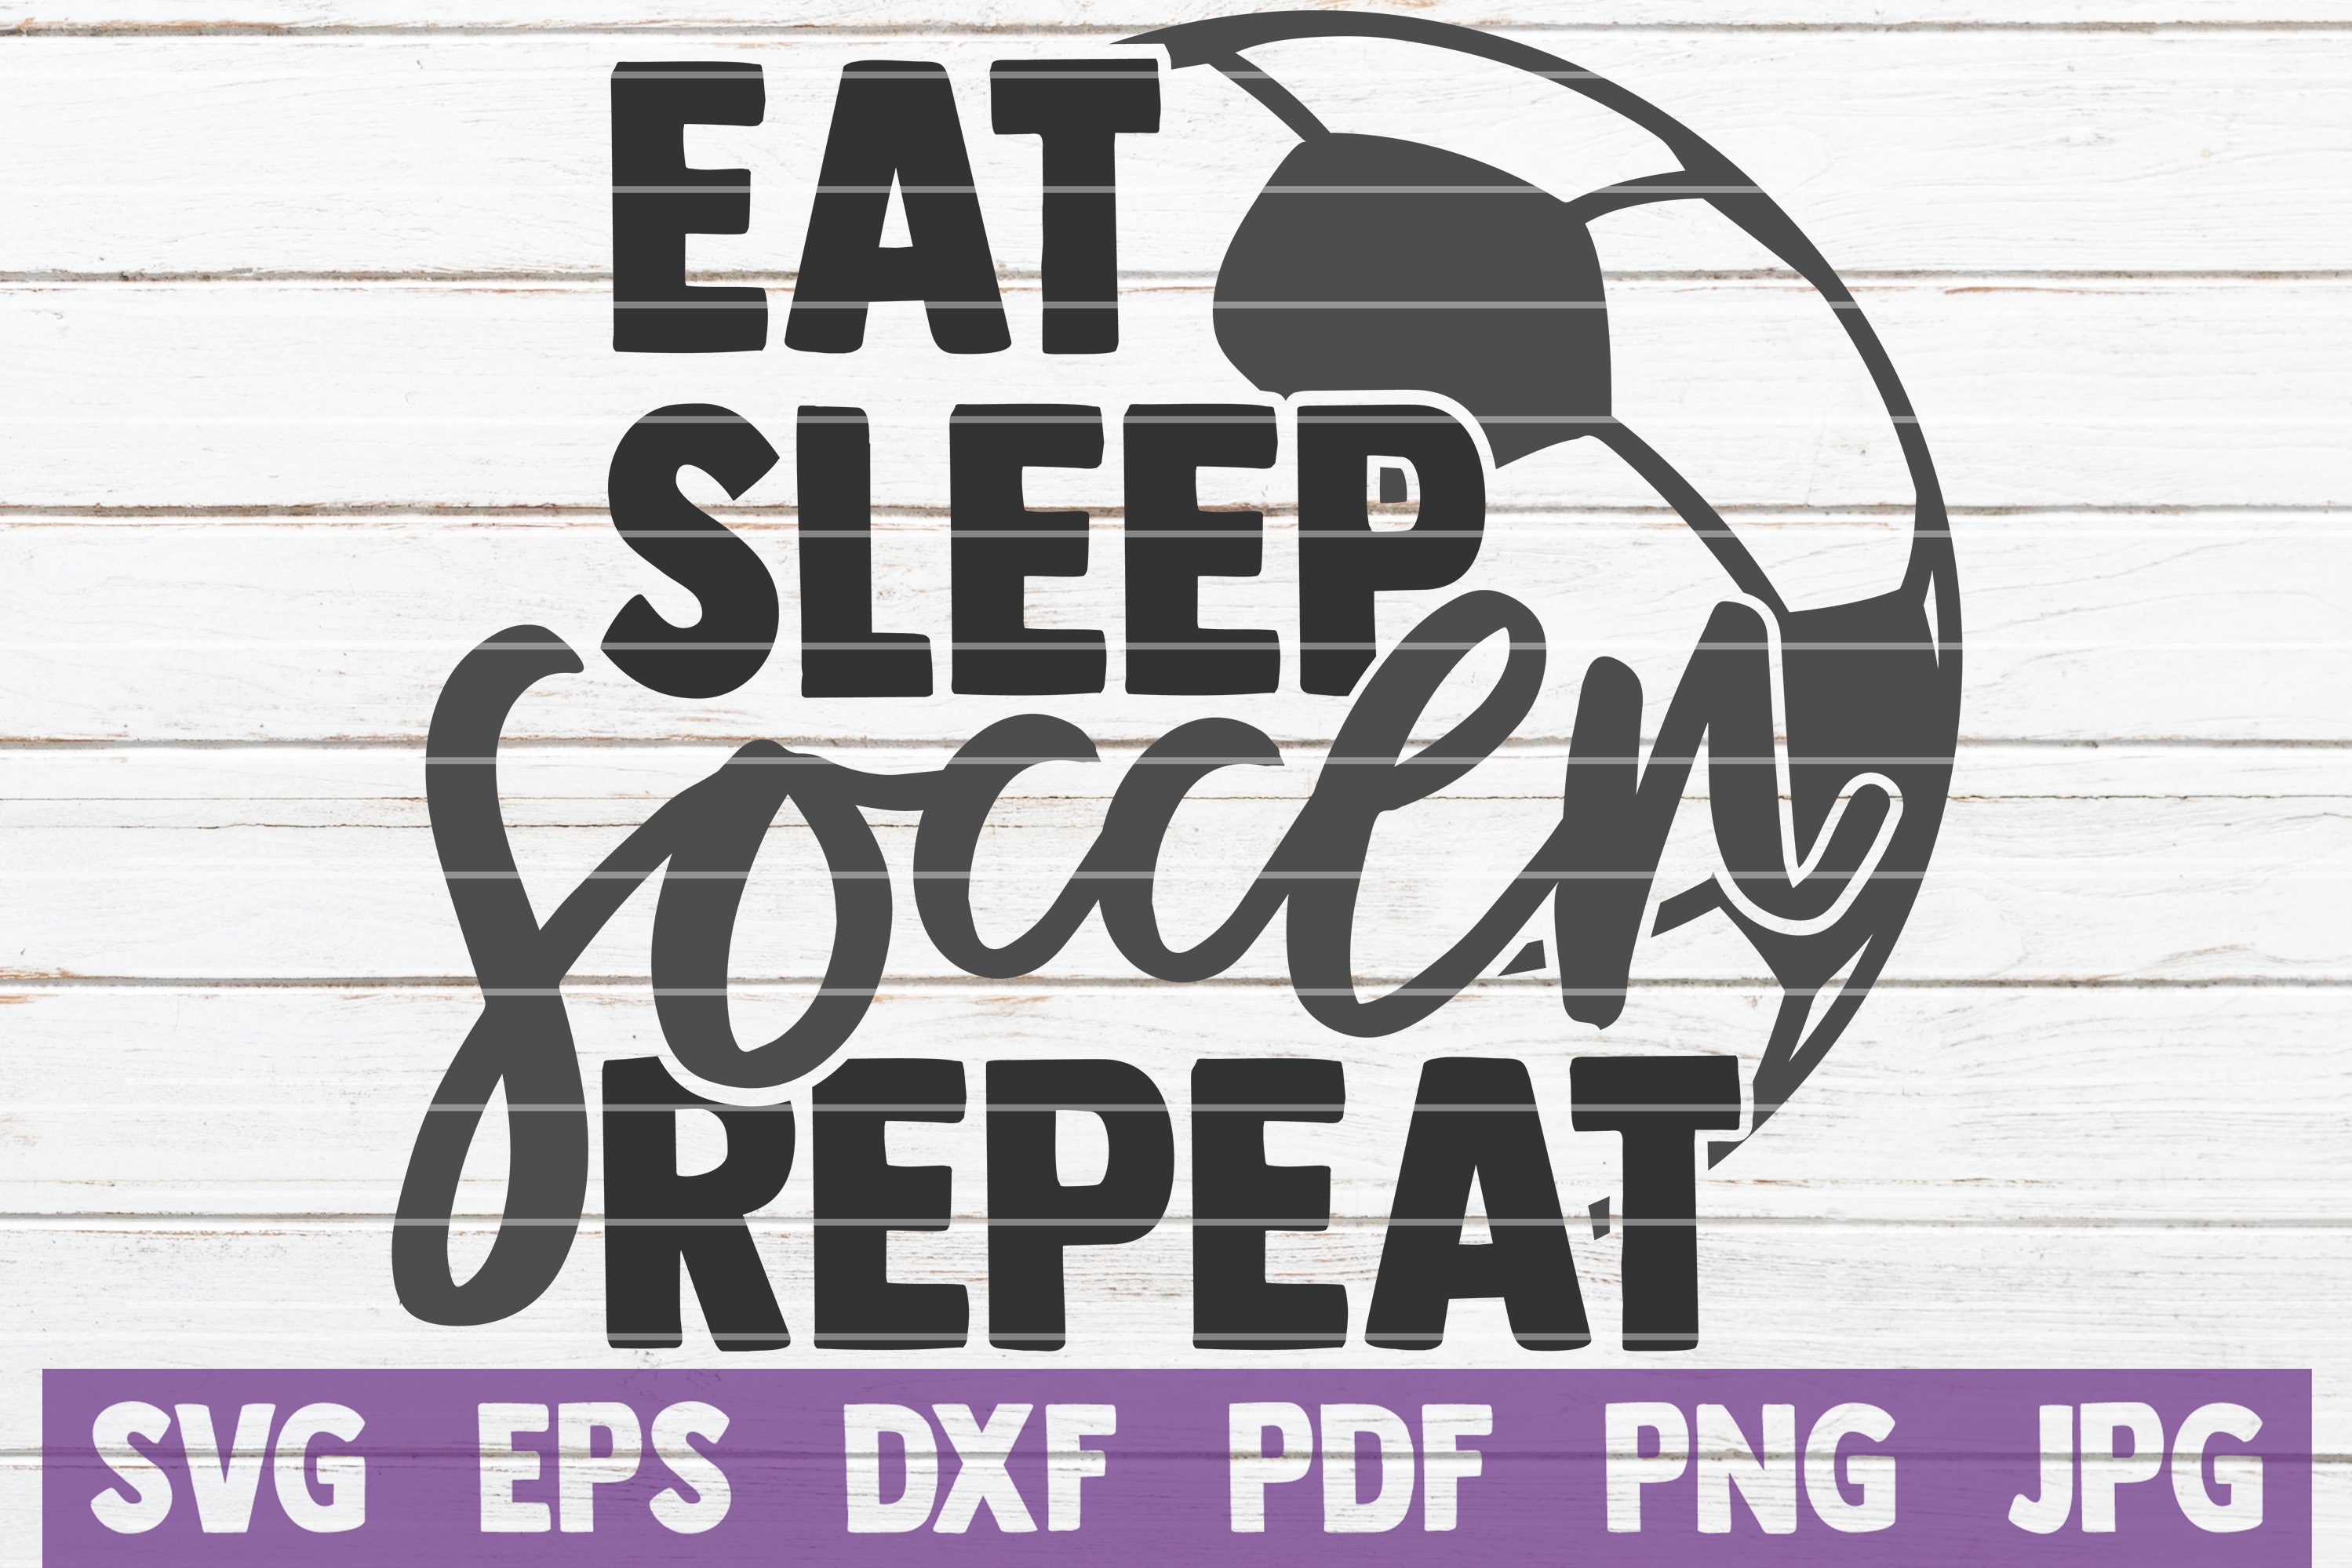 Download Free Eat Sleep Soccer Repeat Svg Cut File Graphic By for Cricut Explore, Silhouette and other cutting machines.